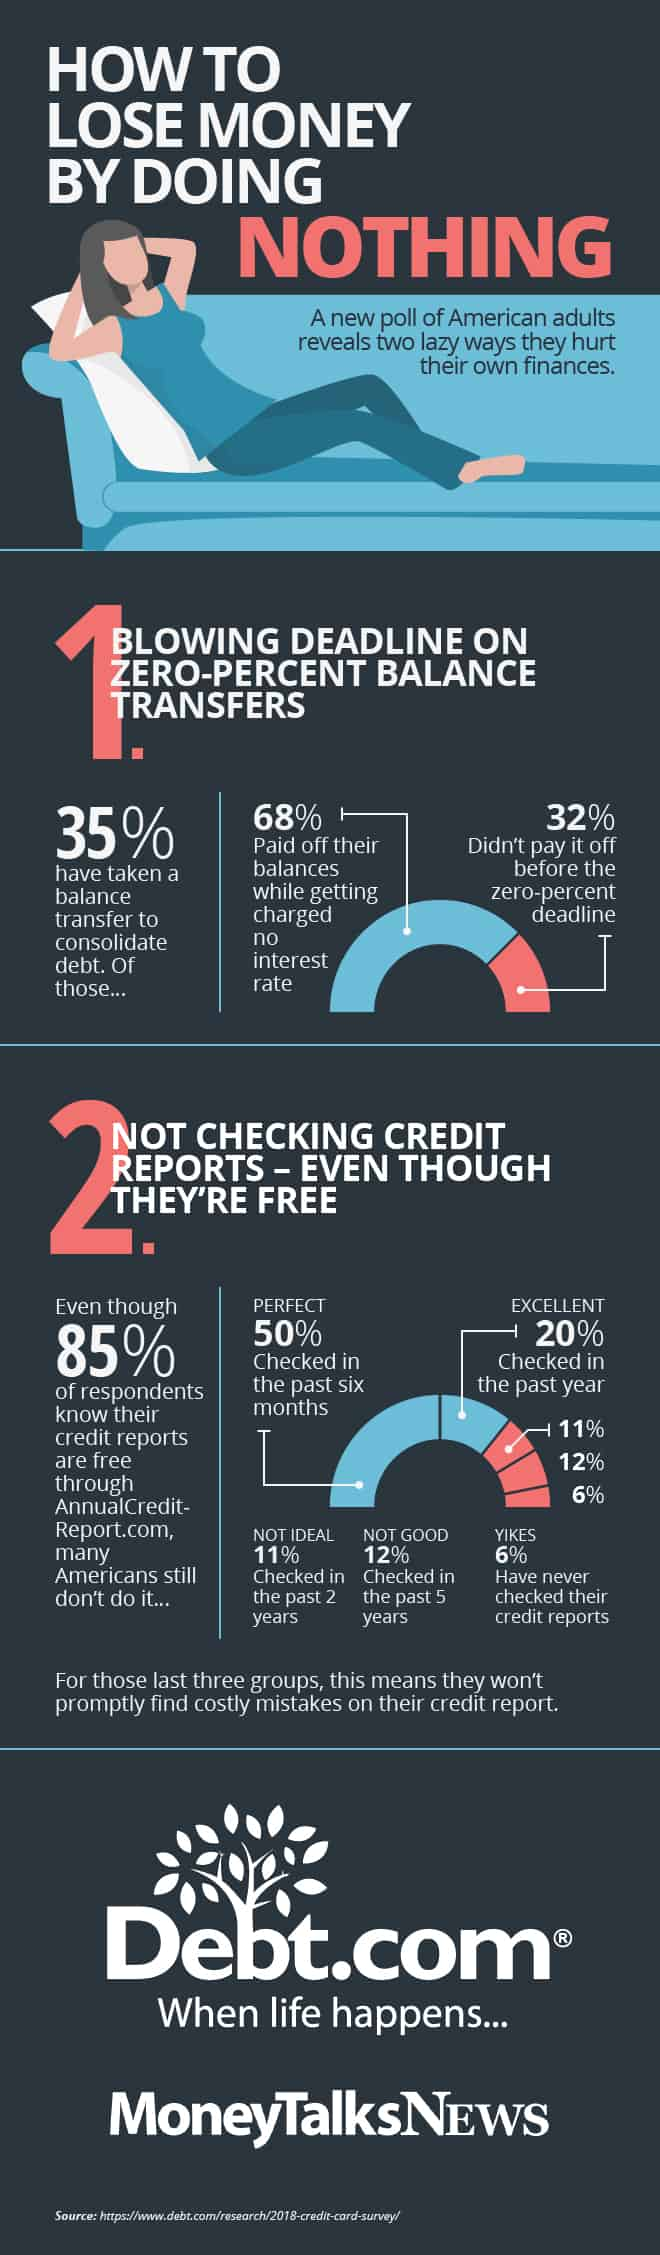 Debt.com's 2018 credit card survey infographic: How to lose money by doing nothing